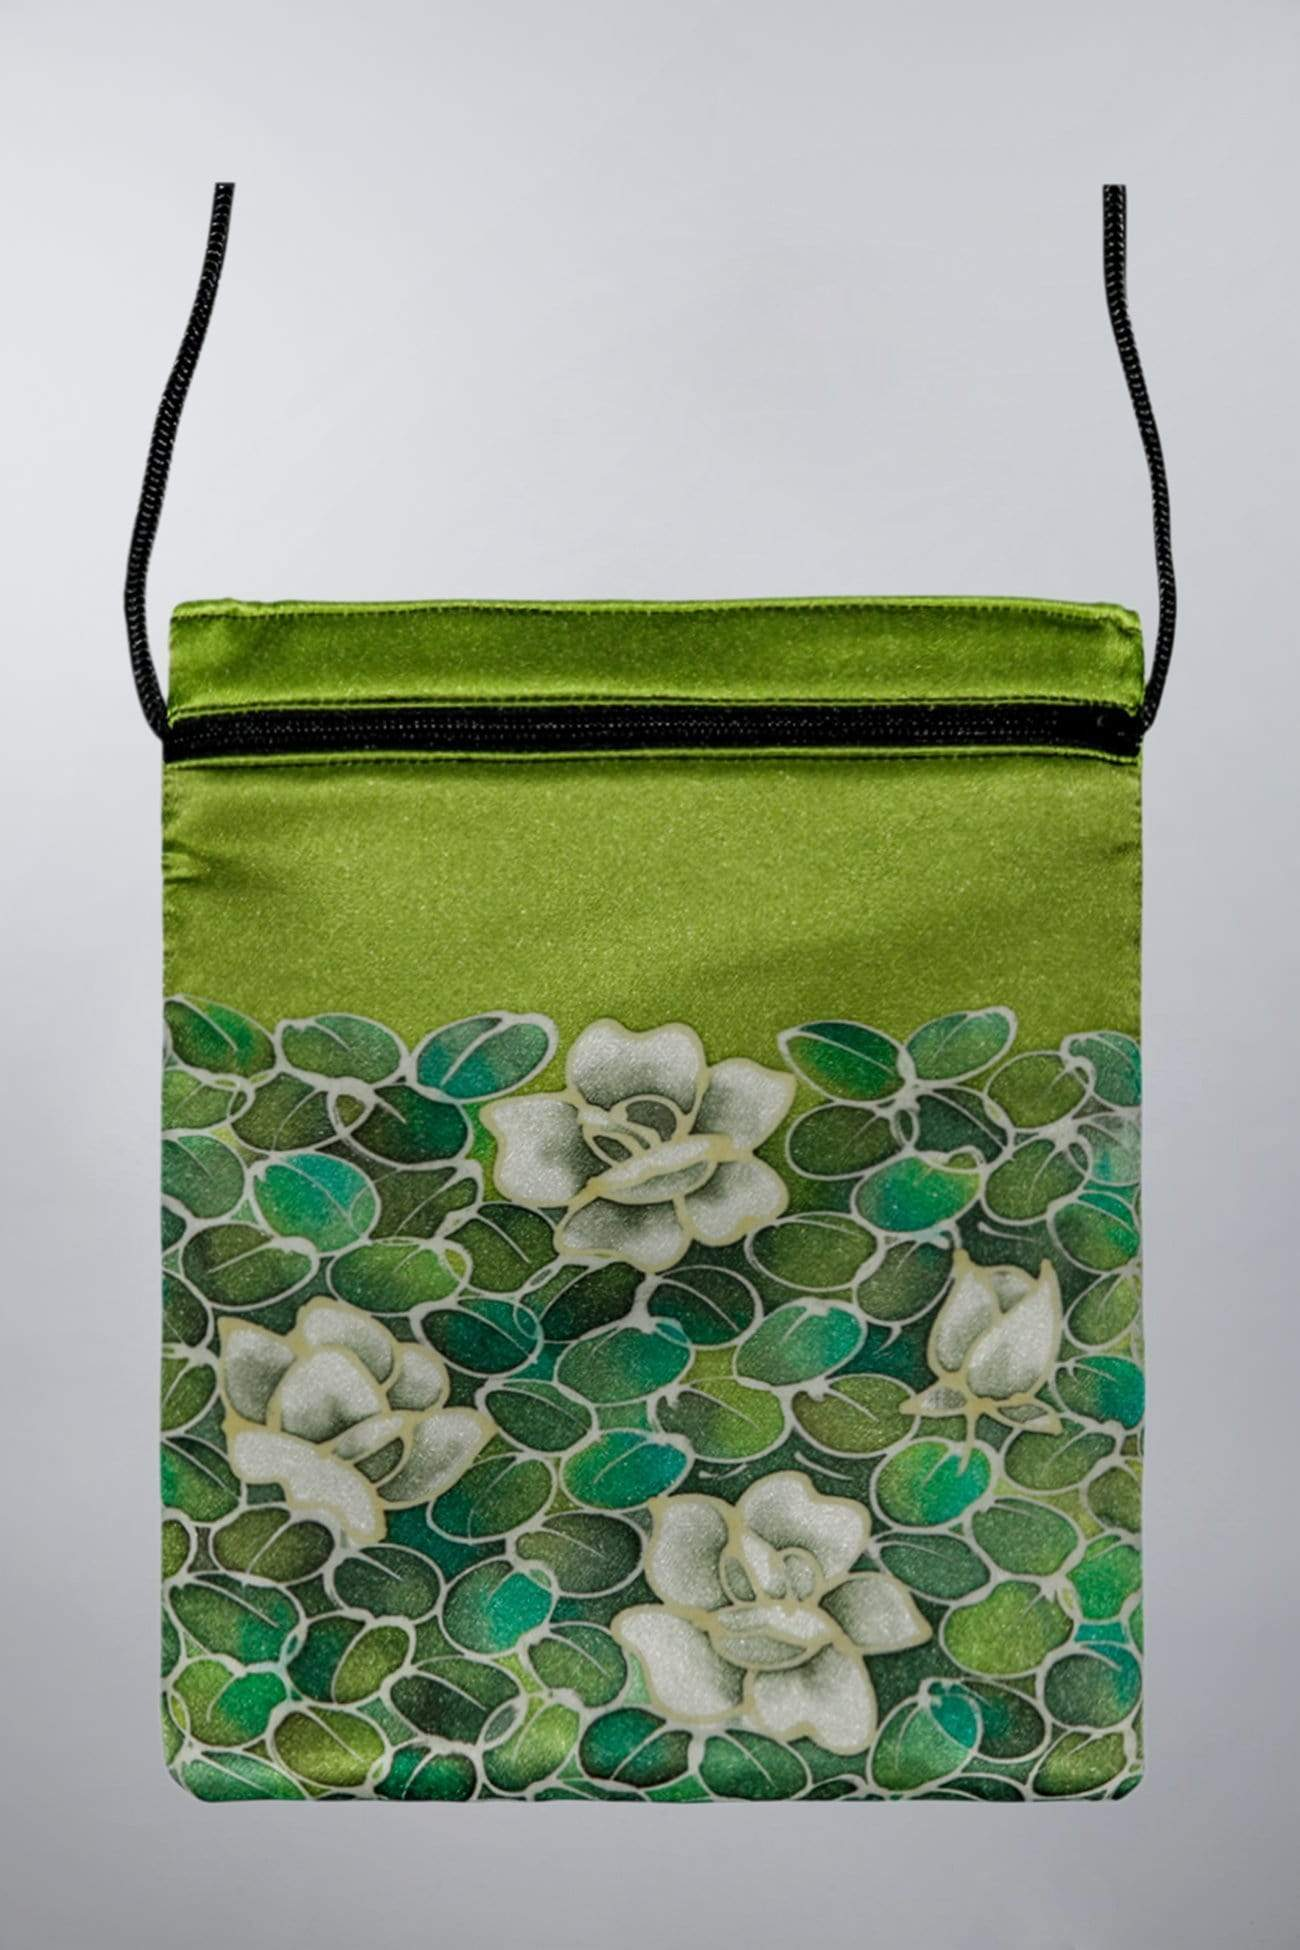 Invisible World Silk Bags Chartreuse Green Hand-Painted Silk Passport Bag - Monochrome Flower